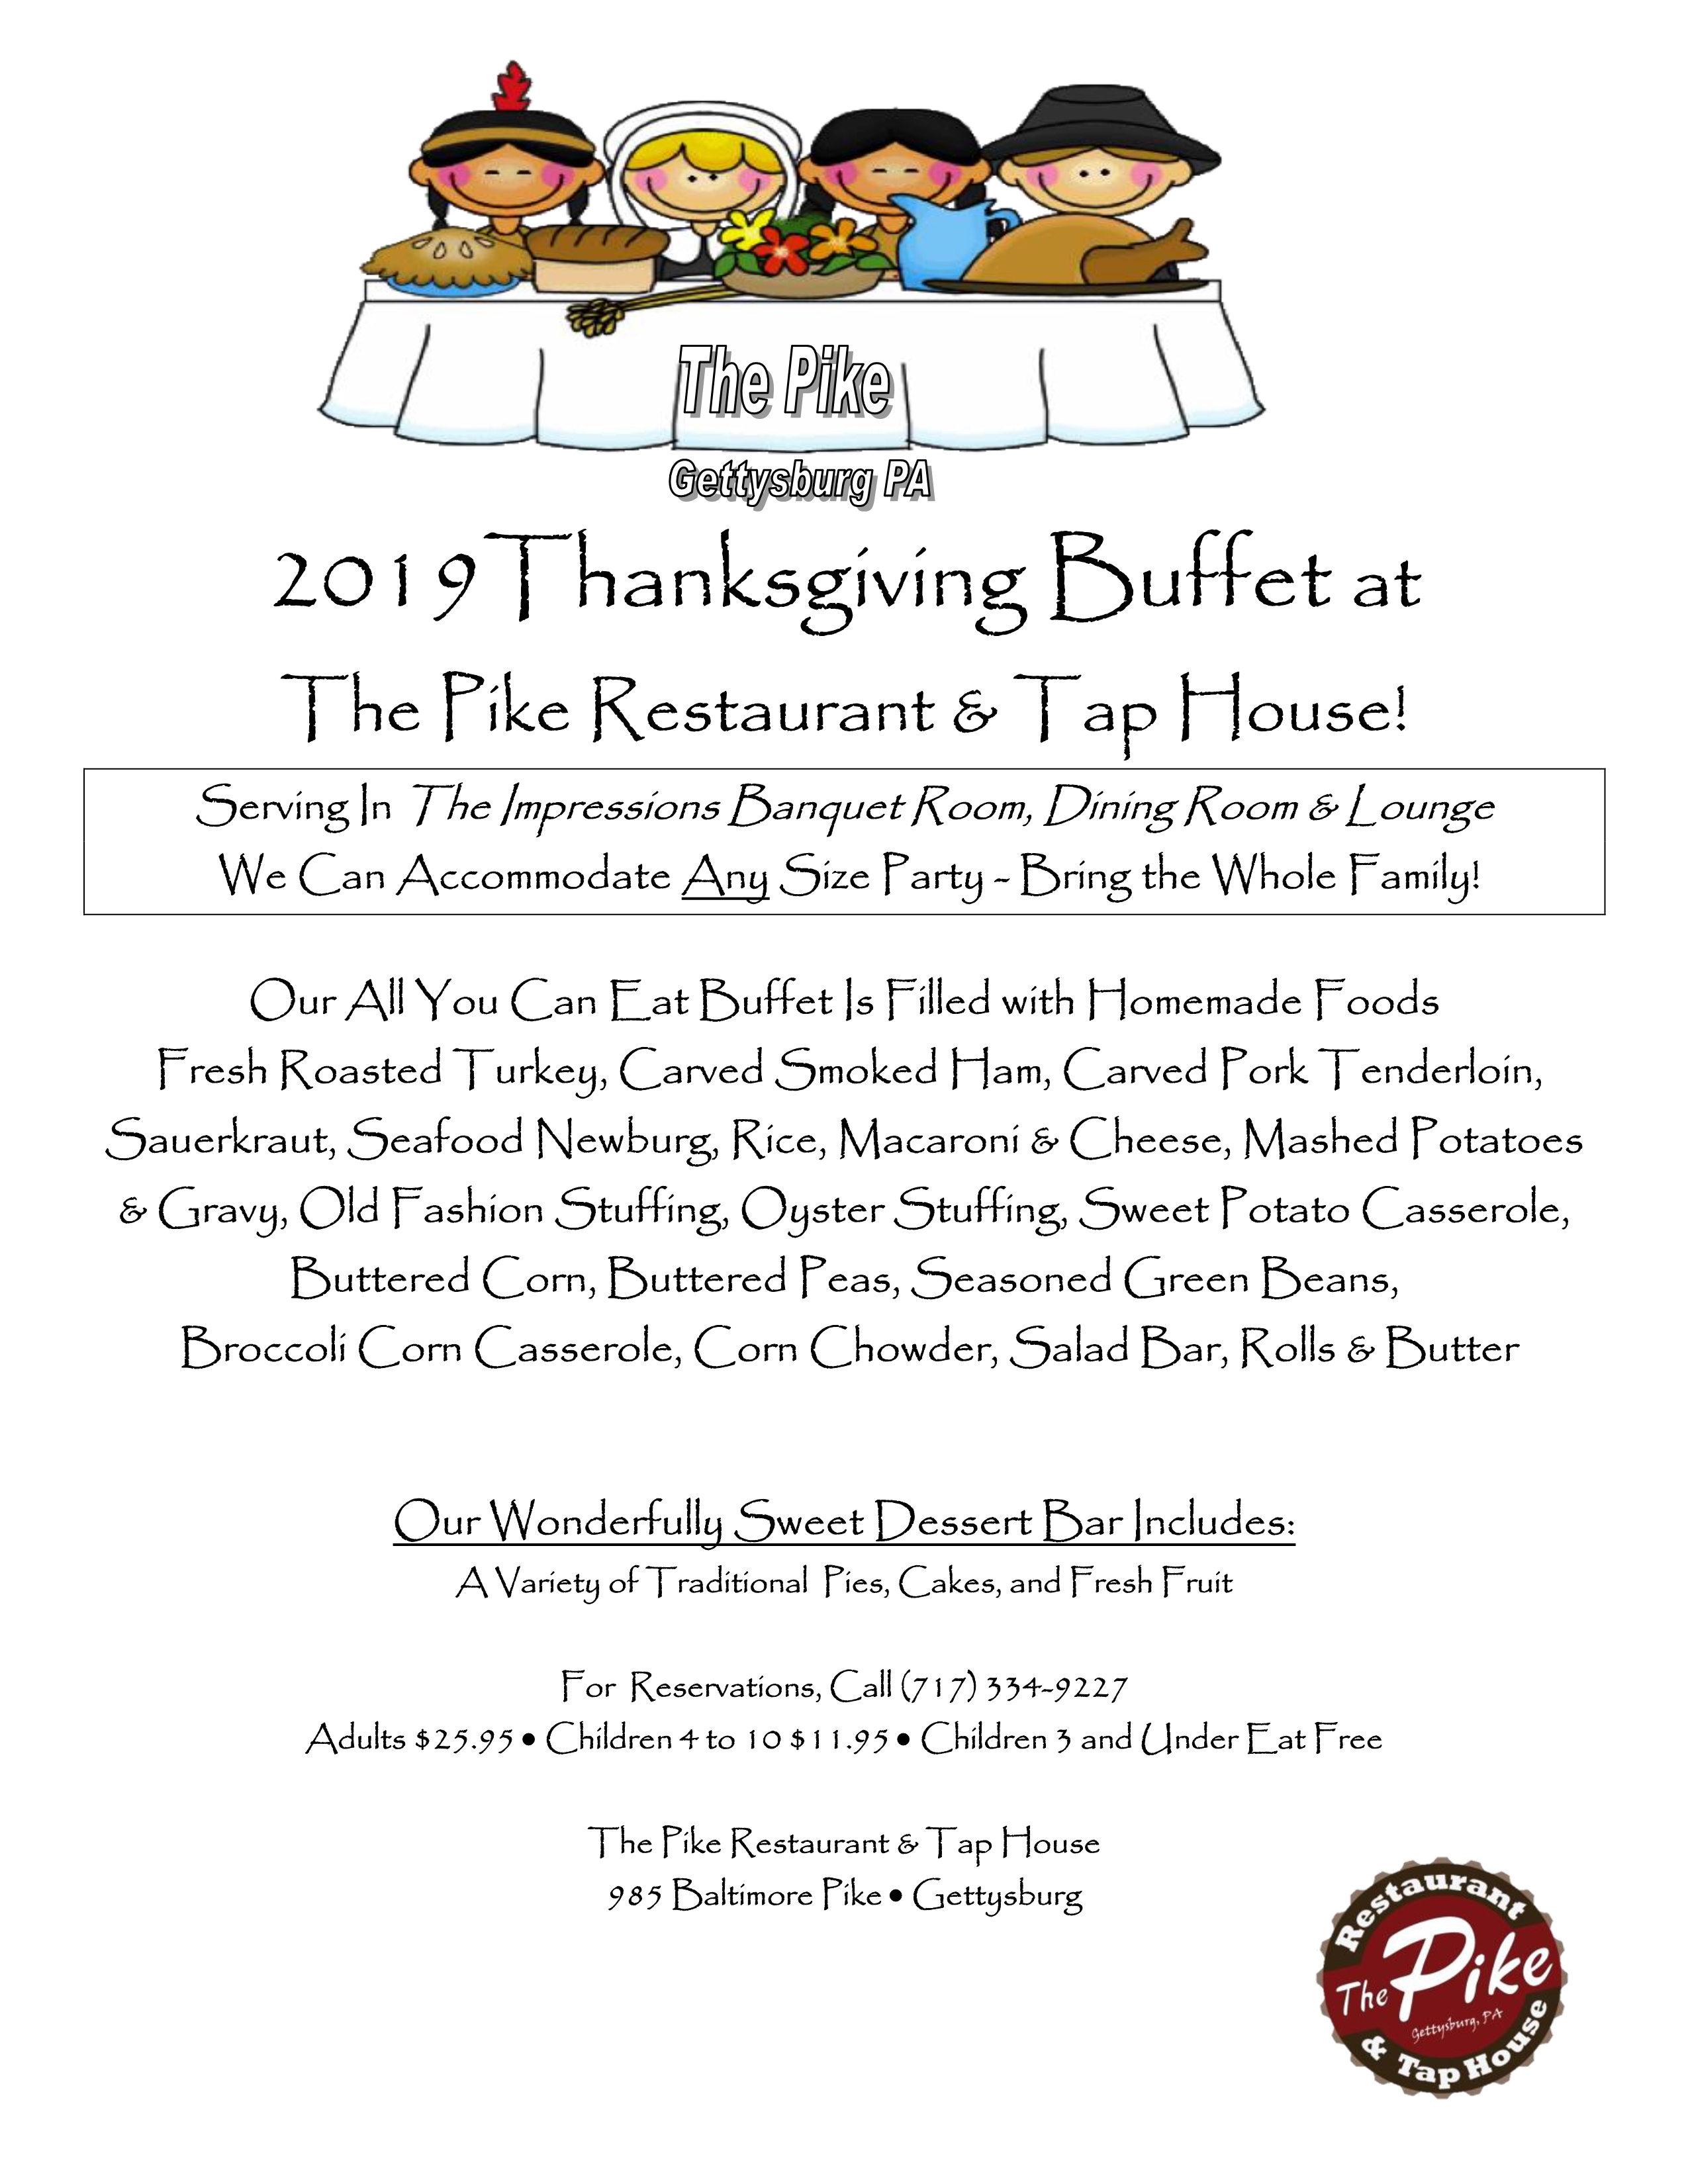 The Pike Gettysburg PA. 2019 Thanksgiving buffet at the pike restaurant & tap house! Serving in the impressions banquet room, dining room & lounge. We can accommodate any size party- bring the whole family! Our all you can eat buffet is filled with homemade foods: fresh roasted turkey, carved smoked ham, carved pork tenderloin, sauerkraut, seafood newburg, rice, macaroni and cheese, mashed potatoes and gravy, old fashion stuffing, oyster stuffing, sweet potato casserole, buttered corn, buttered peas, seasoned green beans, broccoli corn casserole, corn chowder, salad bar, rolls and butter. Our wonderfully sweet dessert bar includes: a variety of traditional pies, cakes, and fresh fruit. For reservations, call 717-334-9227. Adults $25.95, children 4 to 10 $11.95, children 3 and under eat free. The pike restaurant and tap house, 985 Baltimore pike, Gettysburg.